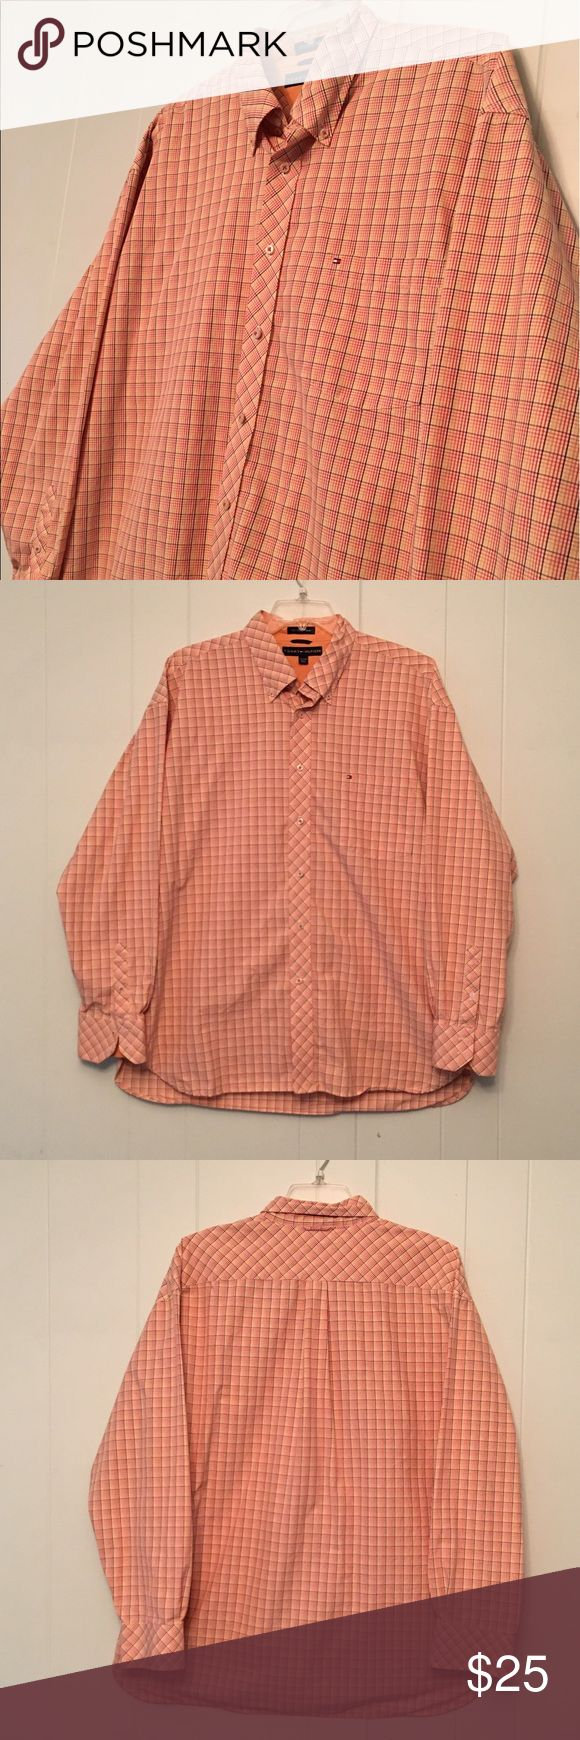 Tommy Hilfiger Orange Button Down Men's Shirt Tommy Hilfiger Button Down Shirt, Great Condition. Tommy Hilfiger Shirts Casual Button Down Shirts